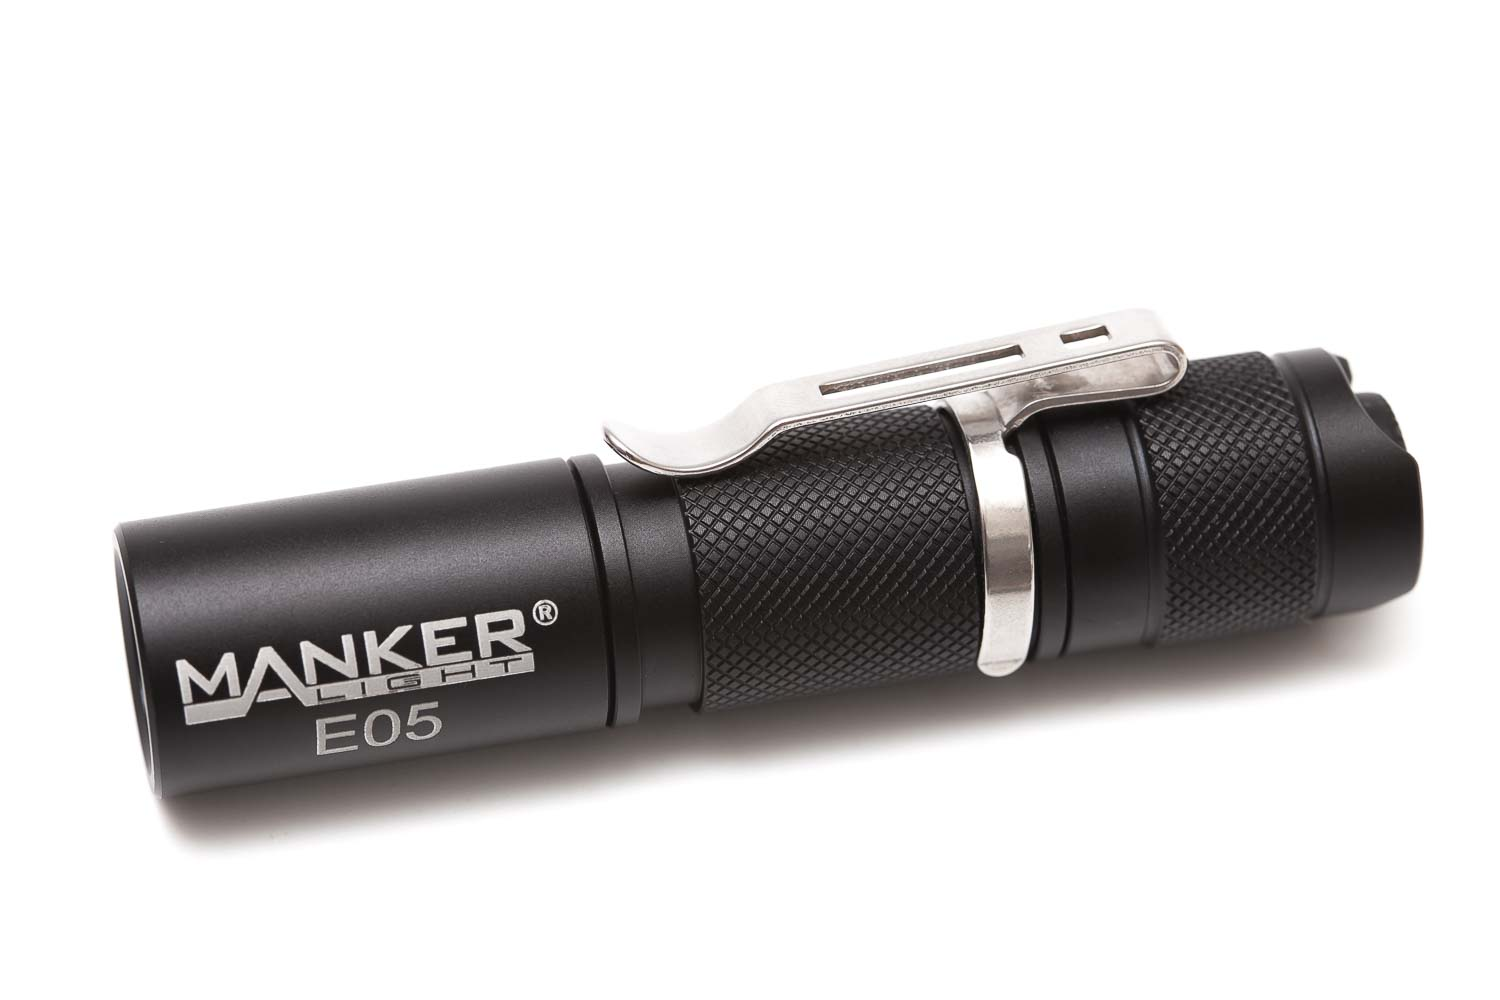 CLOSEOUT SPECIAL Manker E05 Pocket AA//14500 Thrower OSRAM KW CSLNM1.TG LED